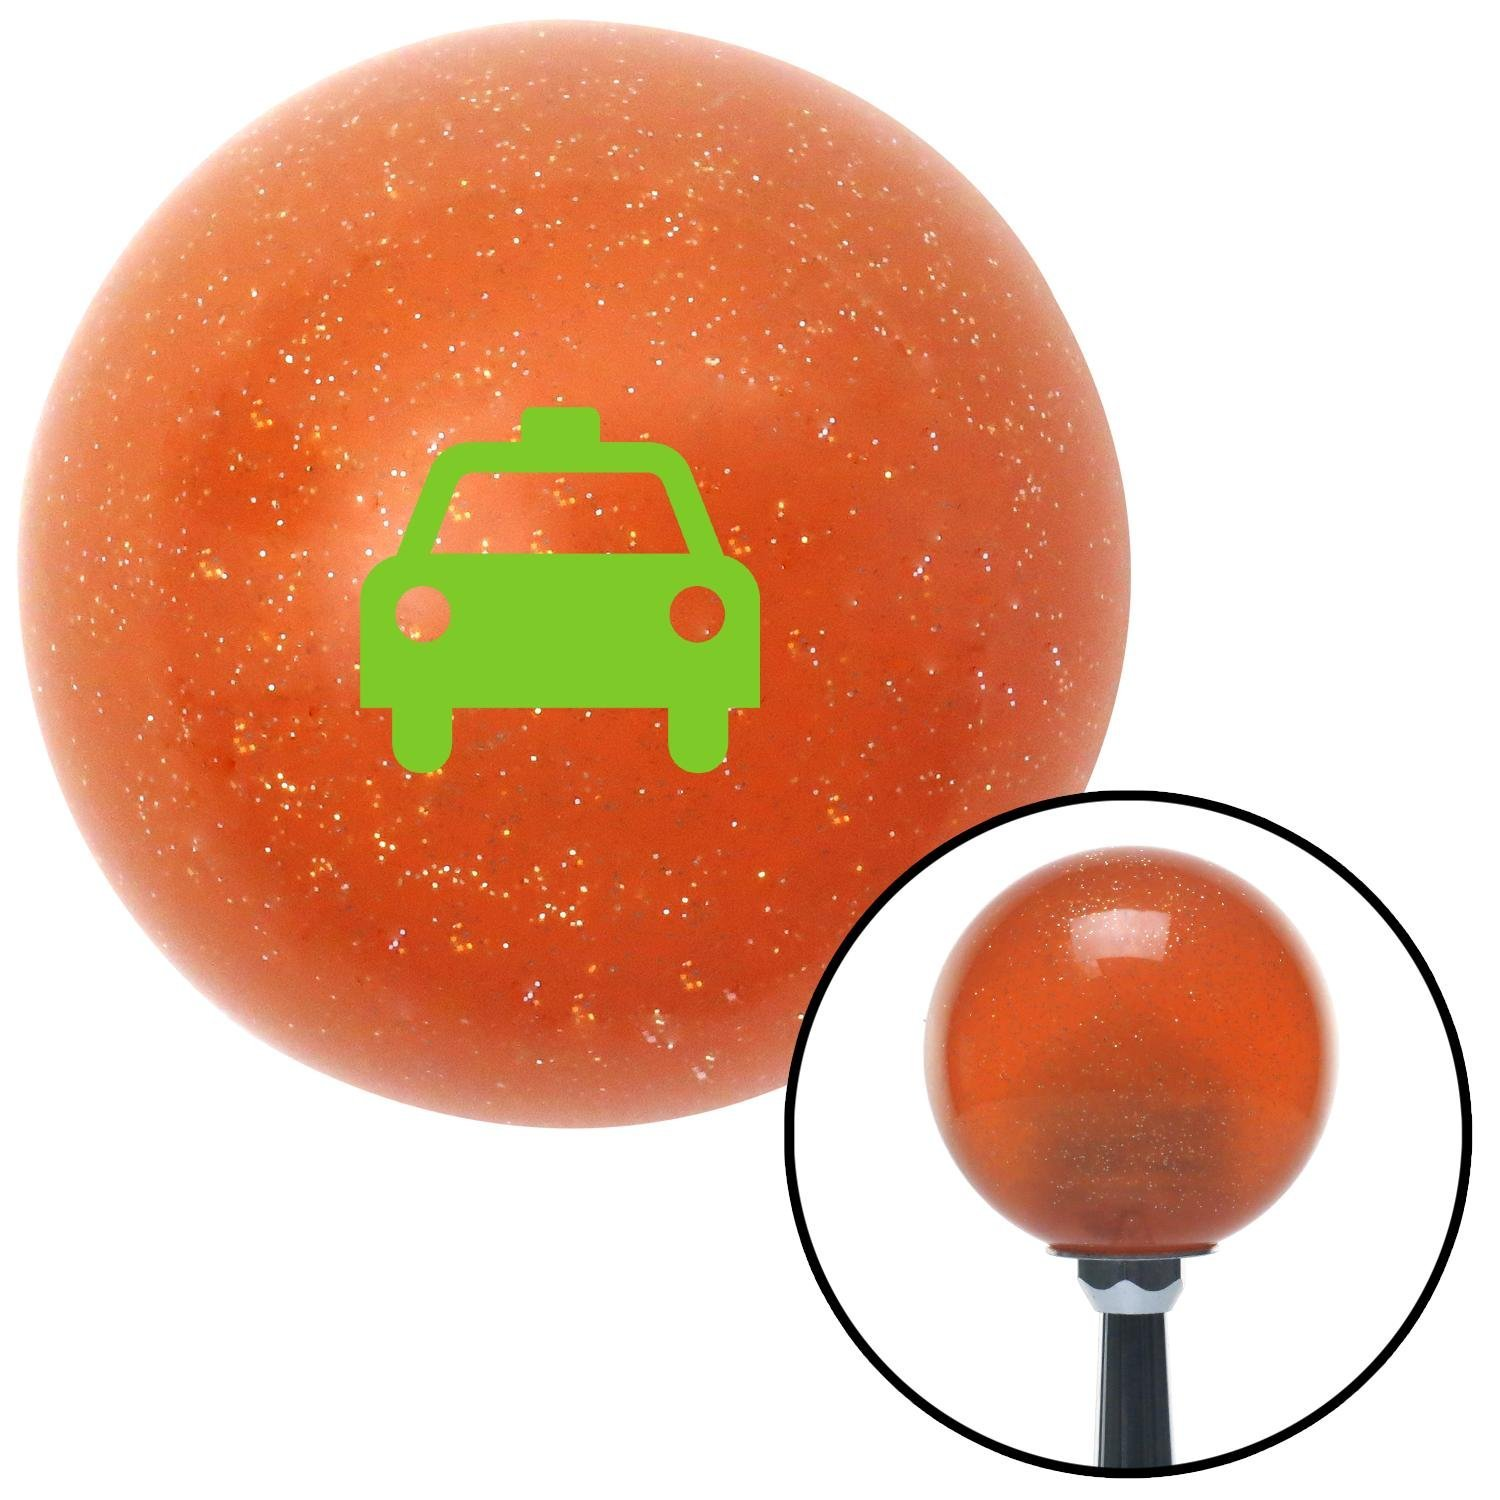 Green Taxi American Shifter 43259 Orange Metal Flake Shift Knob with 16mm x 1.5 Insert